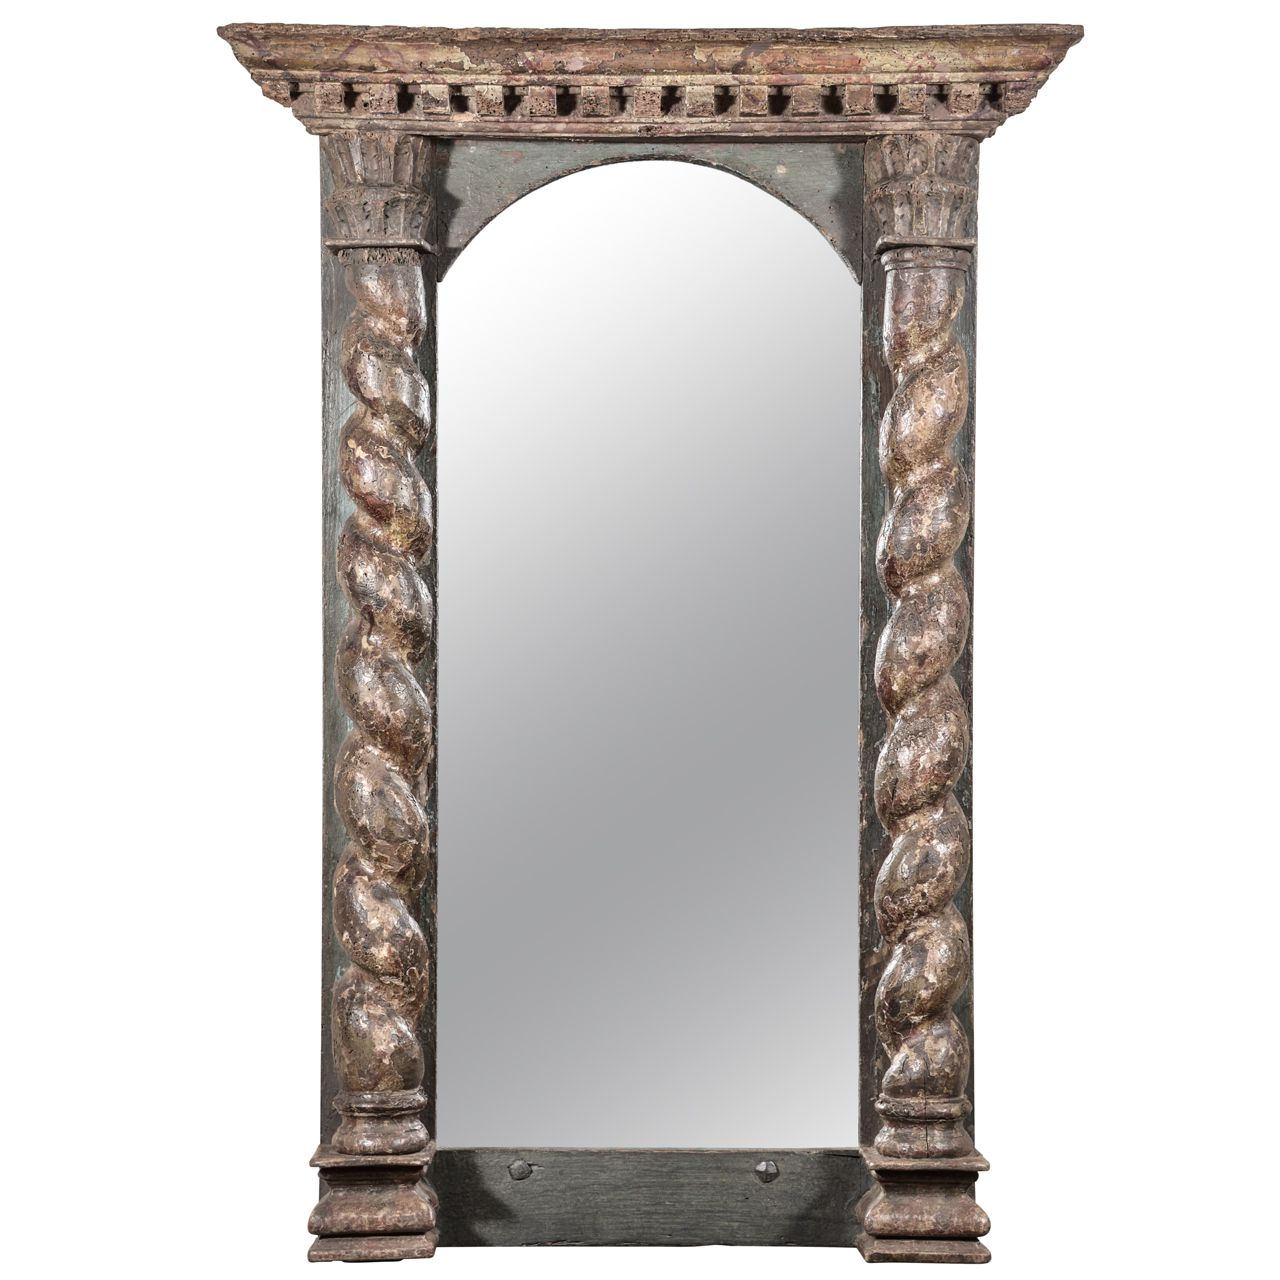 1stdibs.com | 18th c. Painted French Mirror from Skelton - St. John